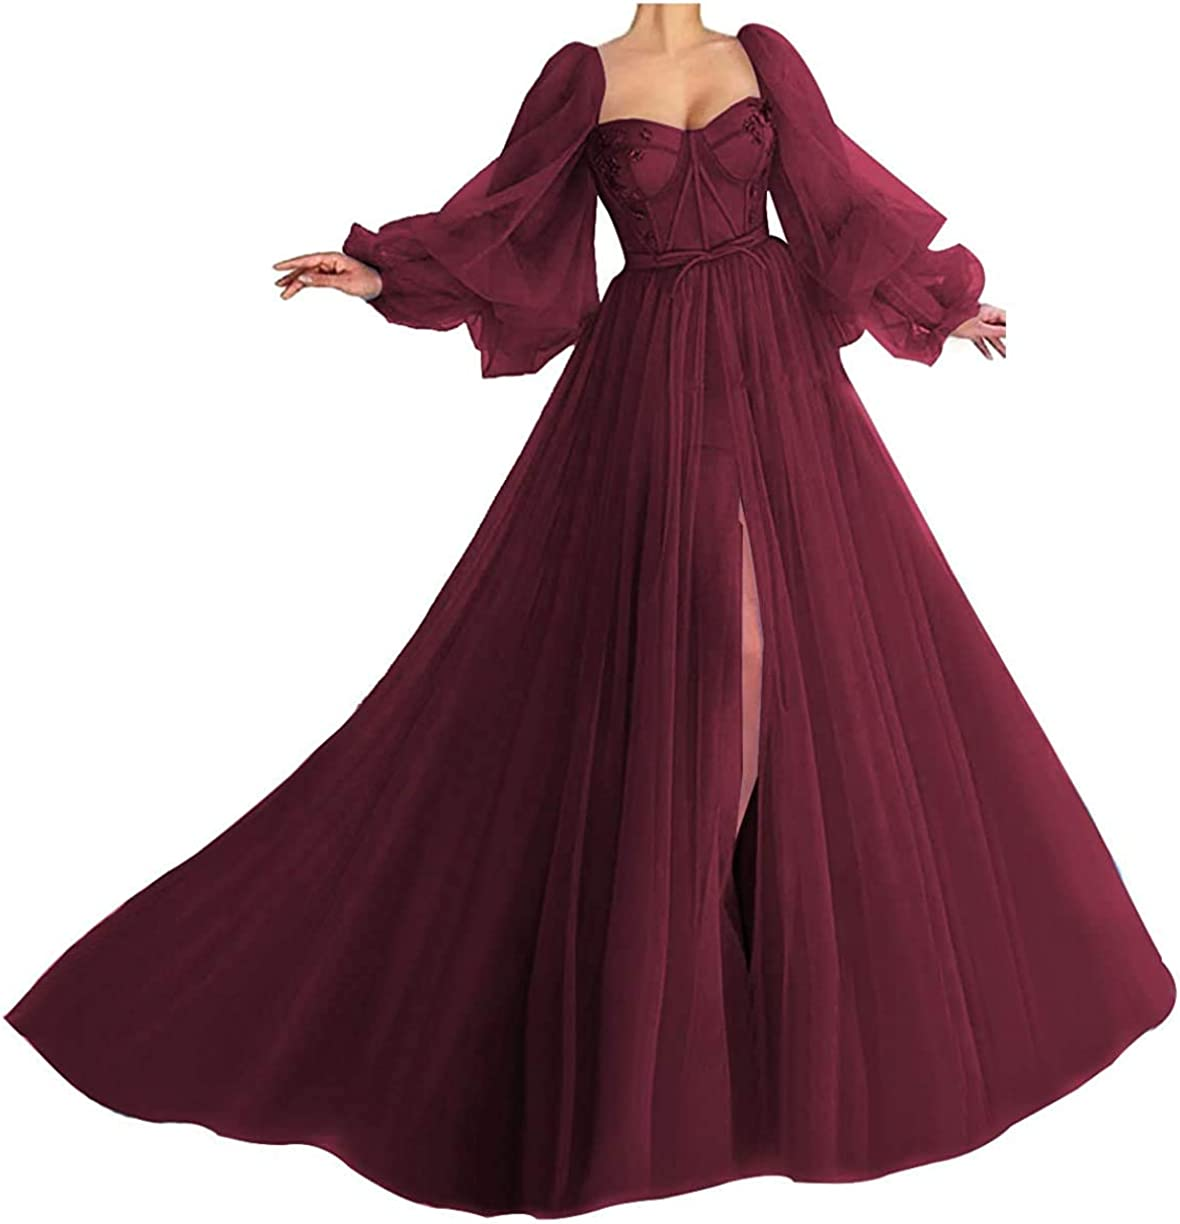 Puffy Sleeve Prom Dress for Women Long Sweetheart Tulle Ball Gowns with Split